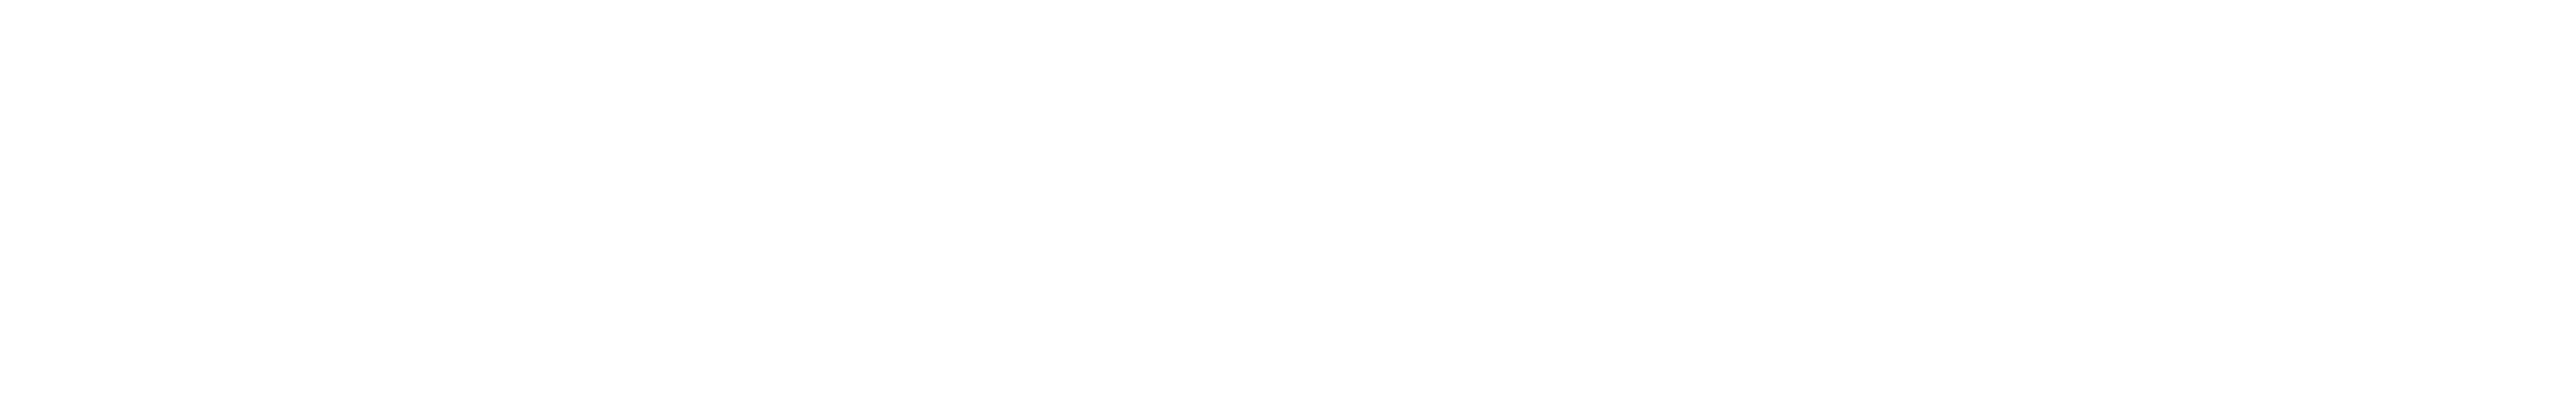 https://uniqueoffice.systems/wp-content/uploads/2019/08/white-toshiba-logo.png